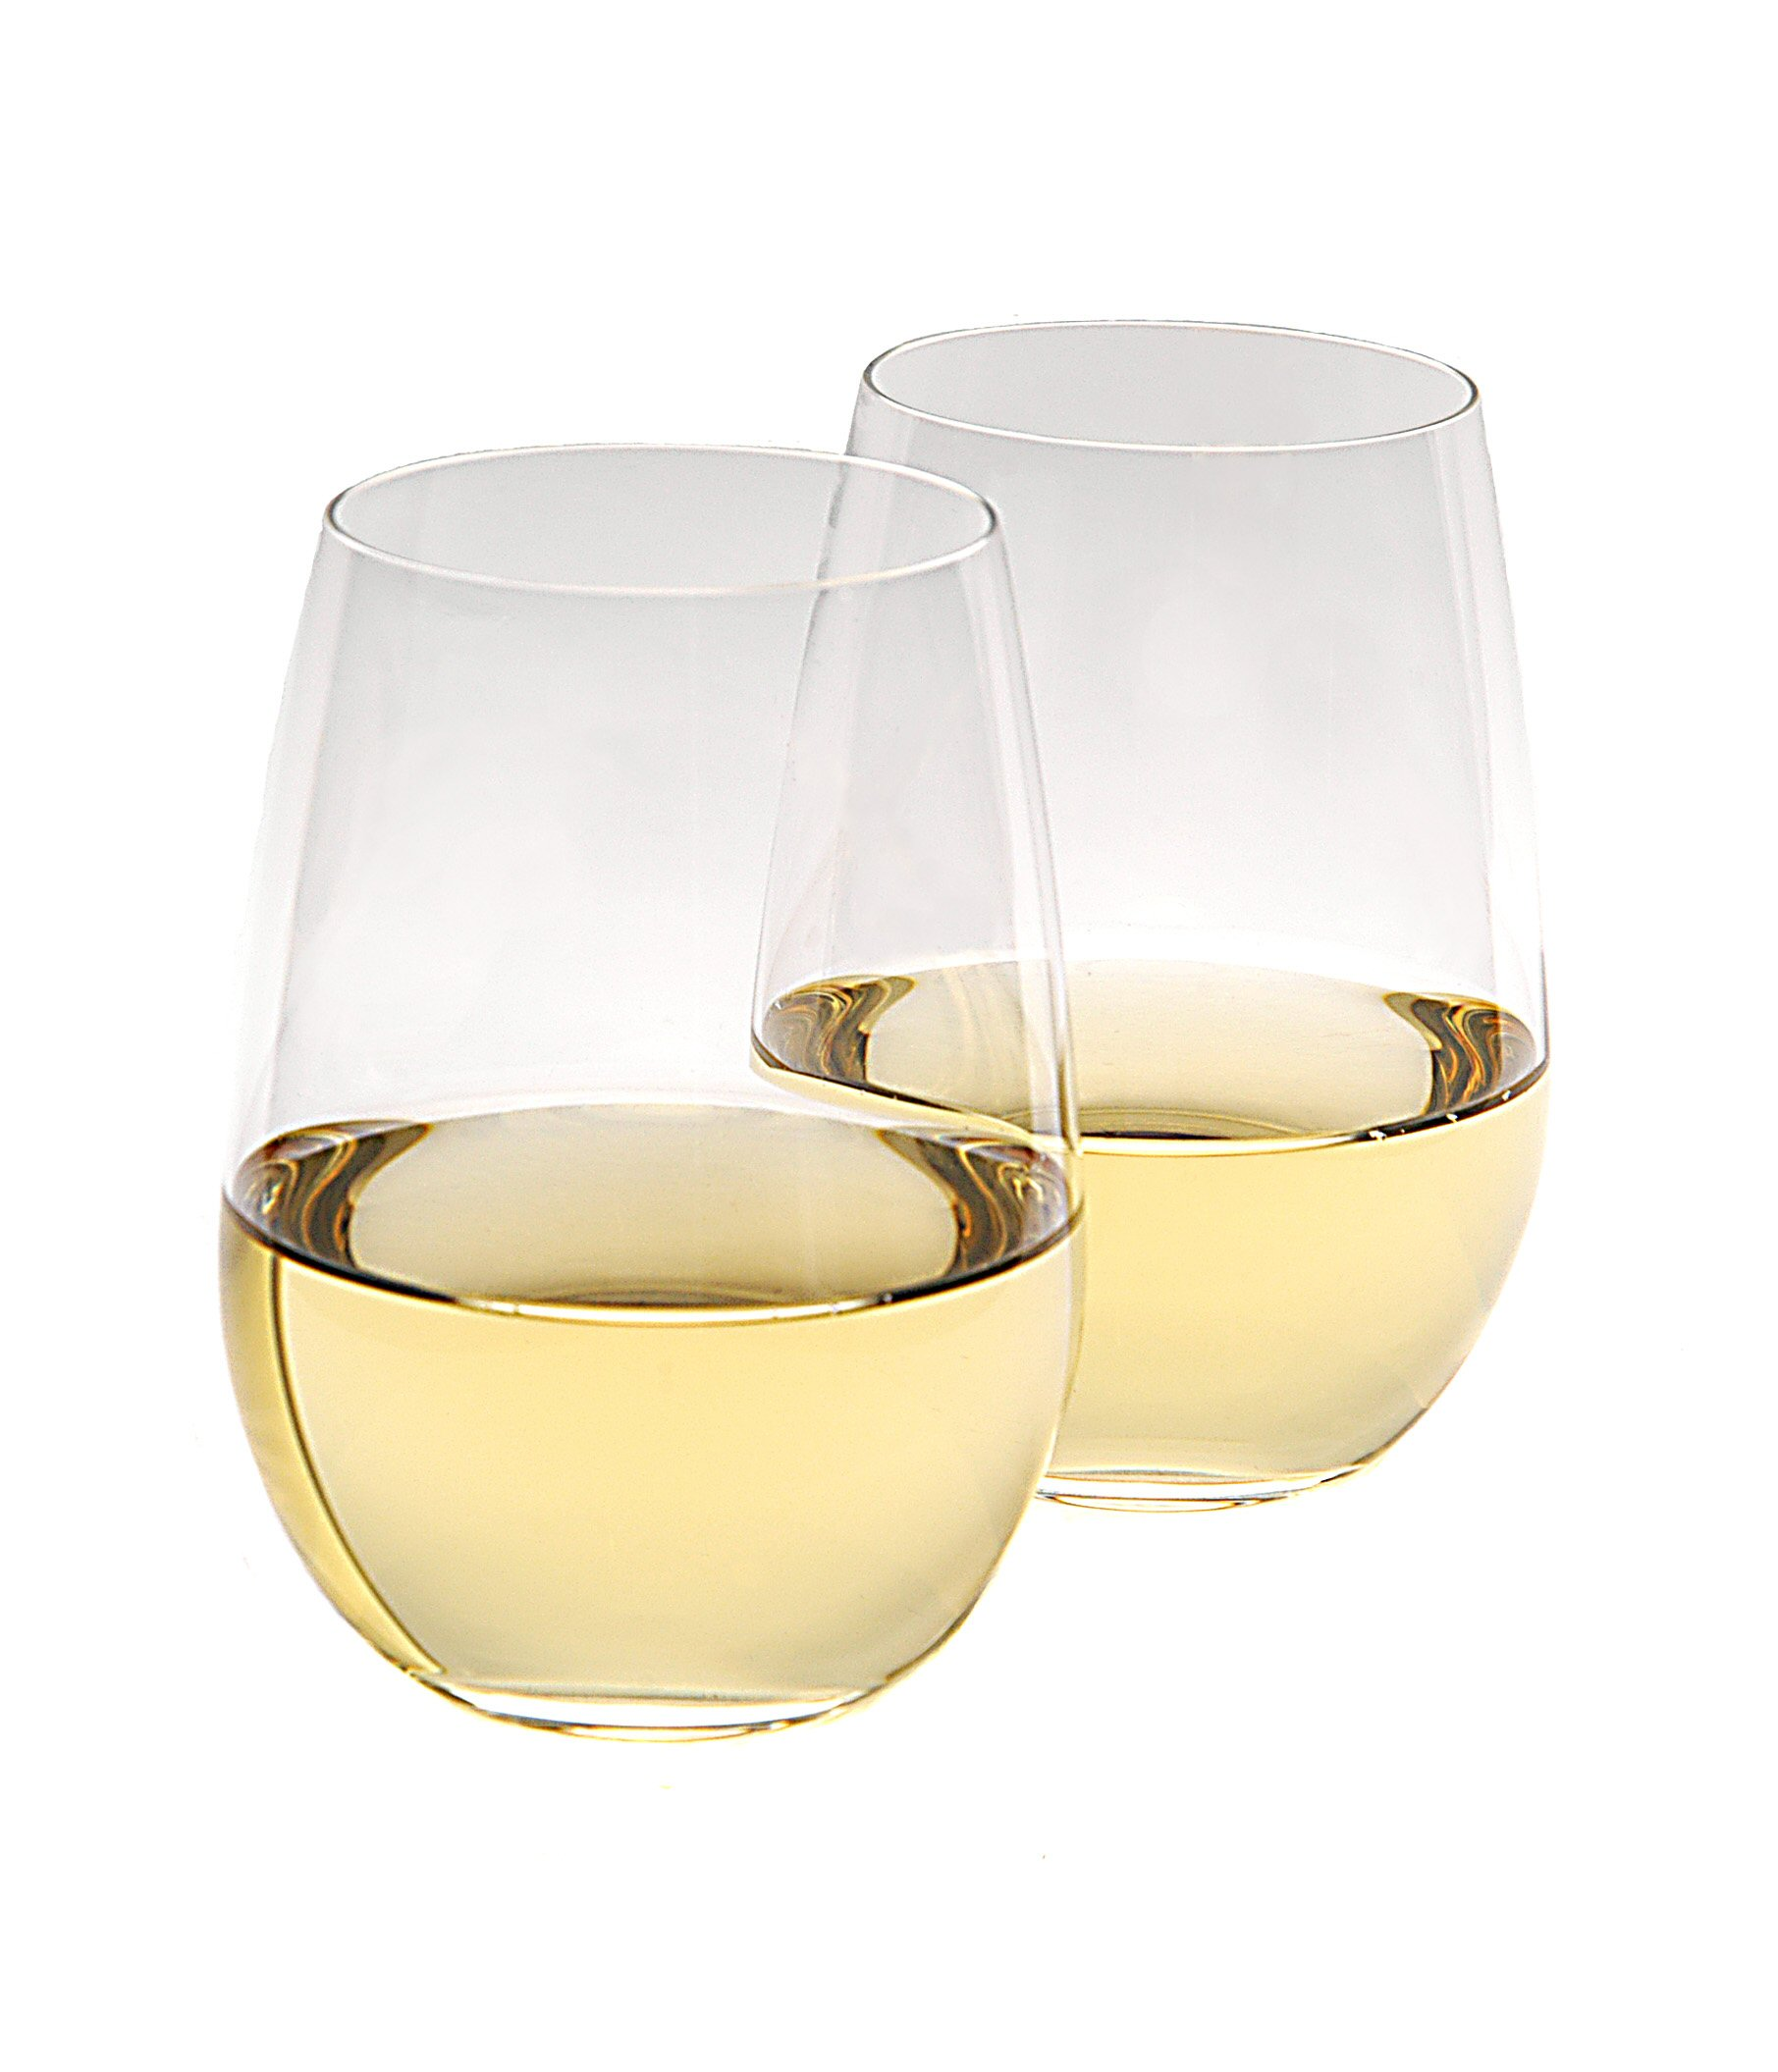 Riedel Stemless Red Wine Glasses Images